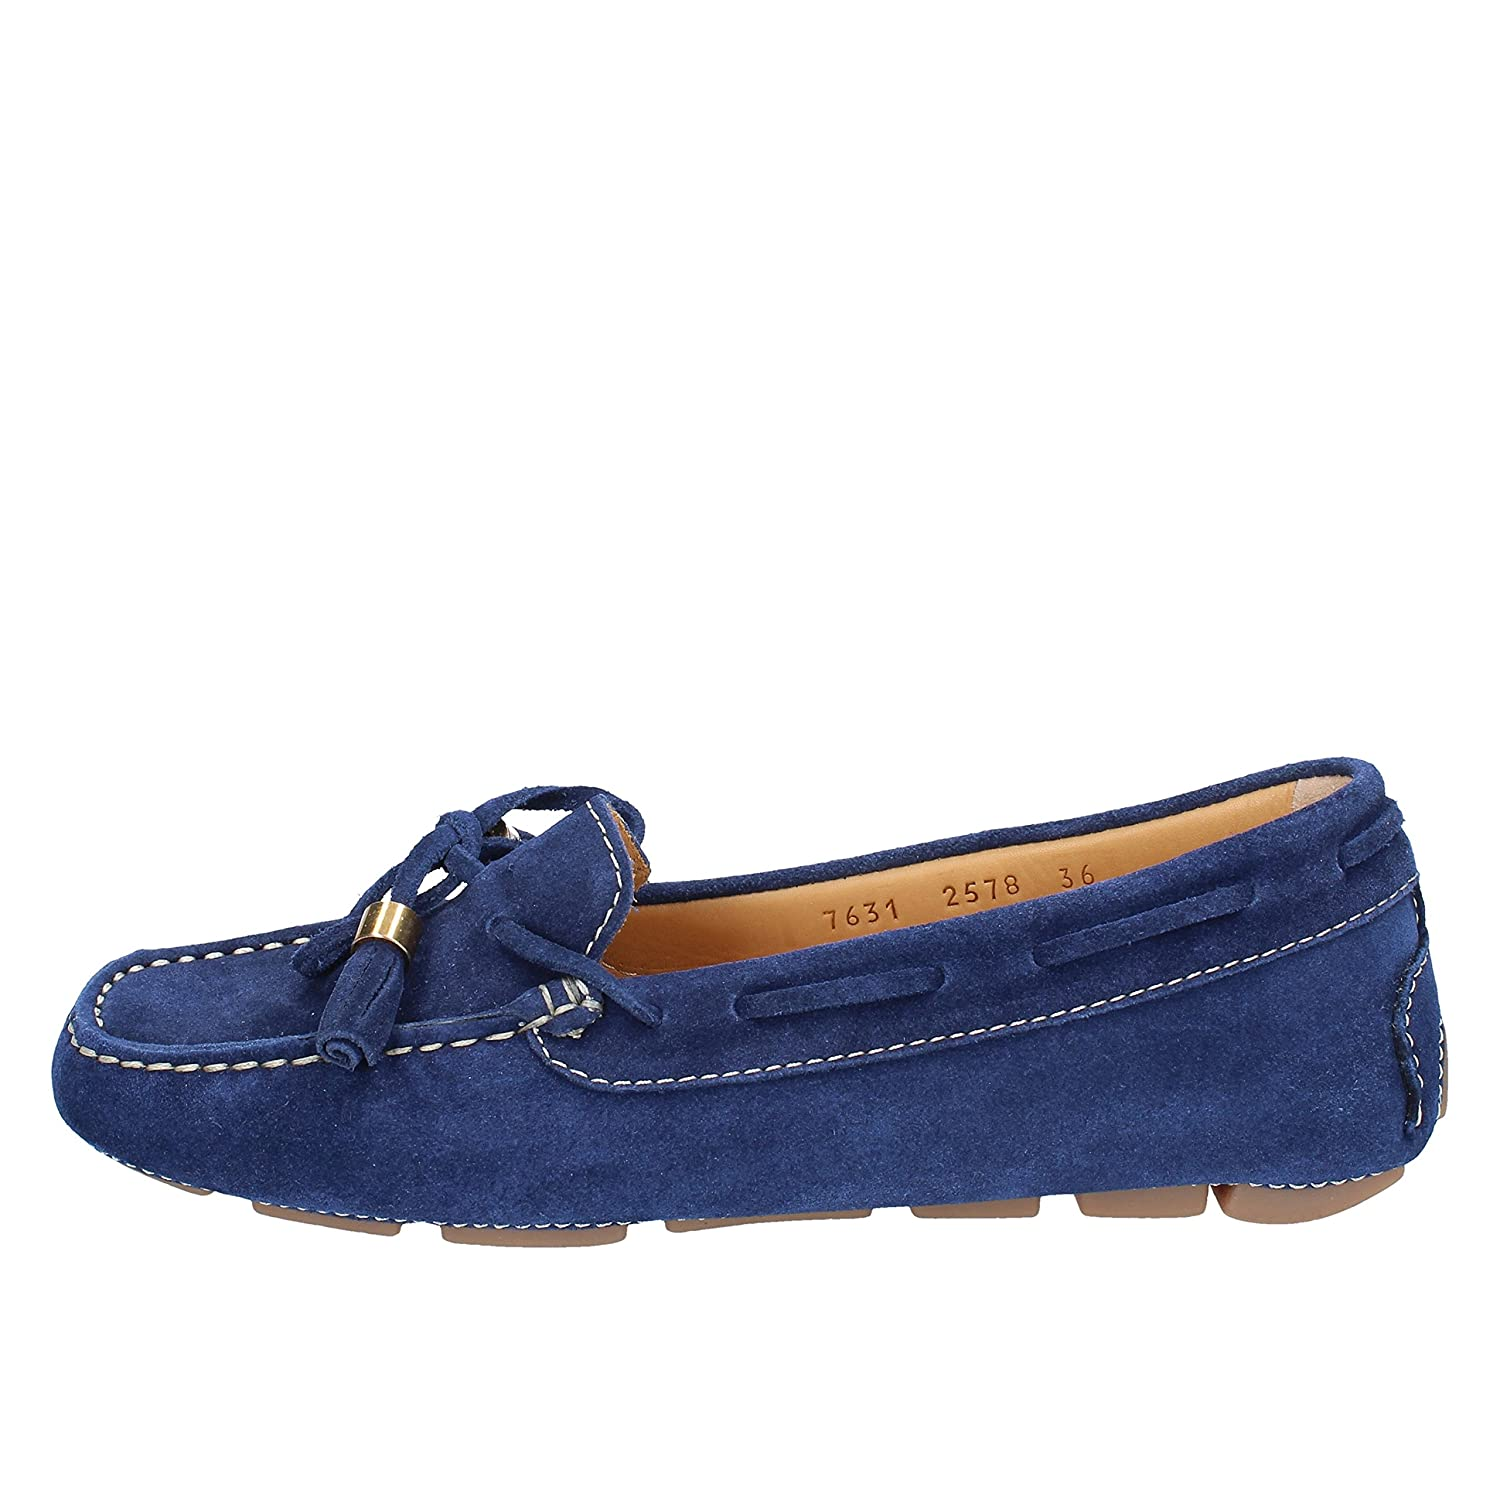 - CALPIERRE Loafers-shoes Womens Suede bluee